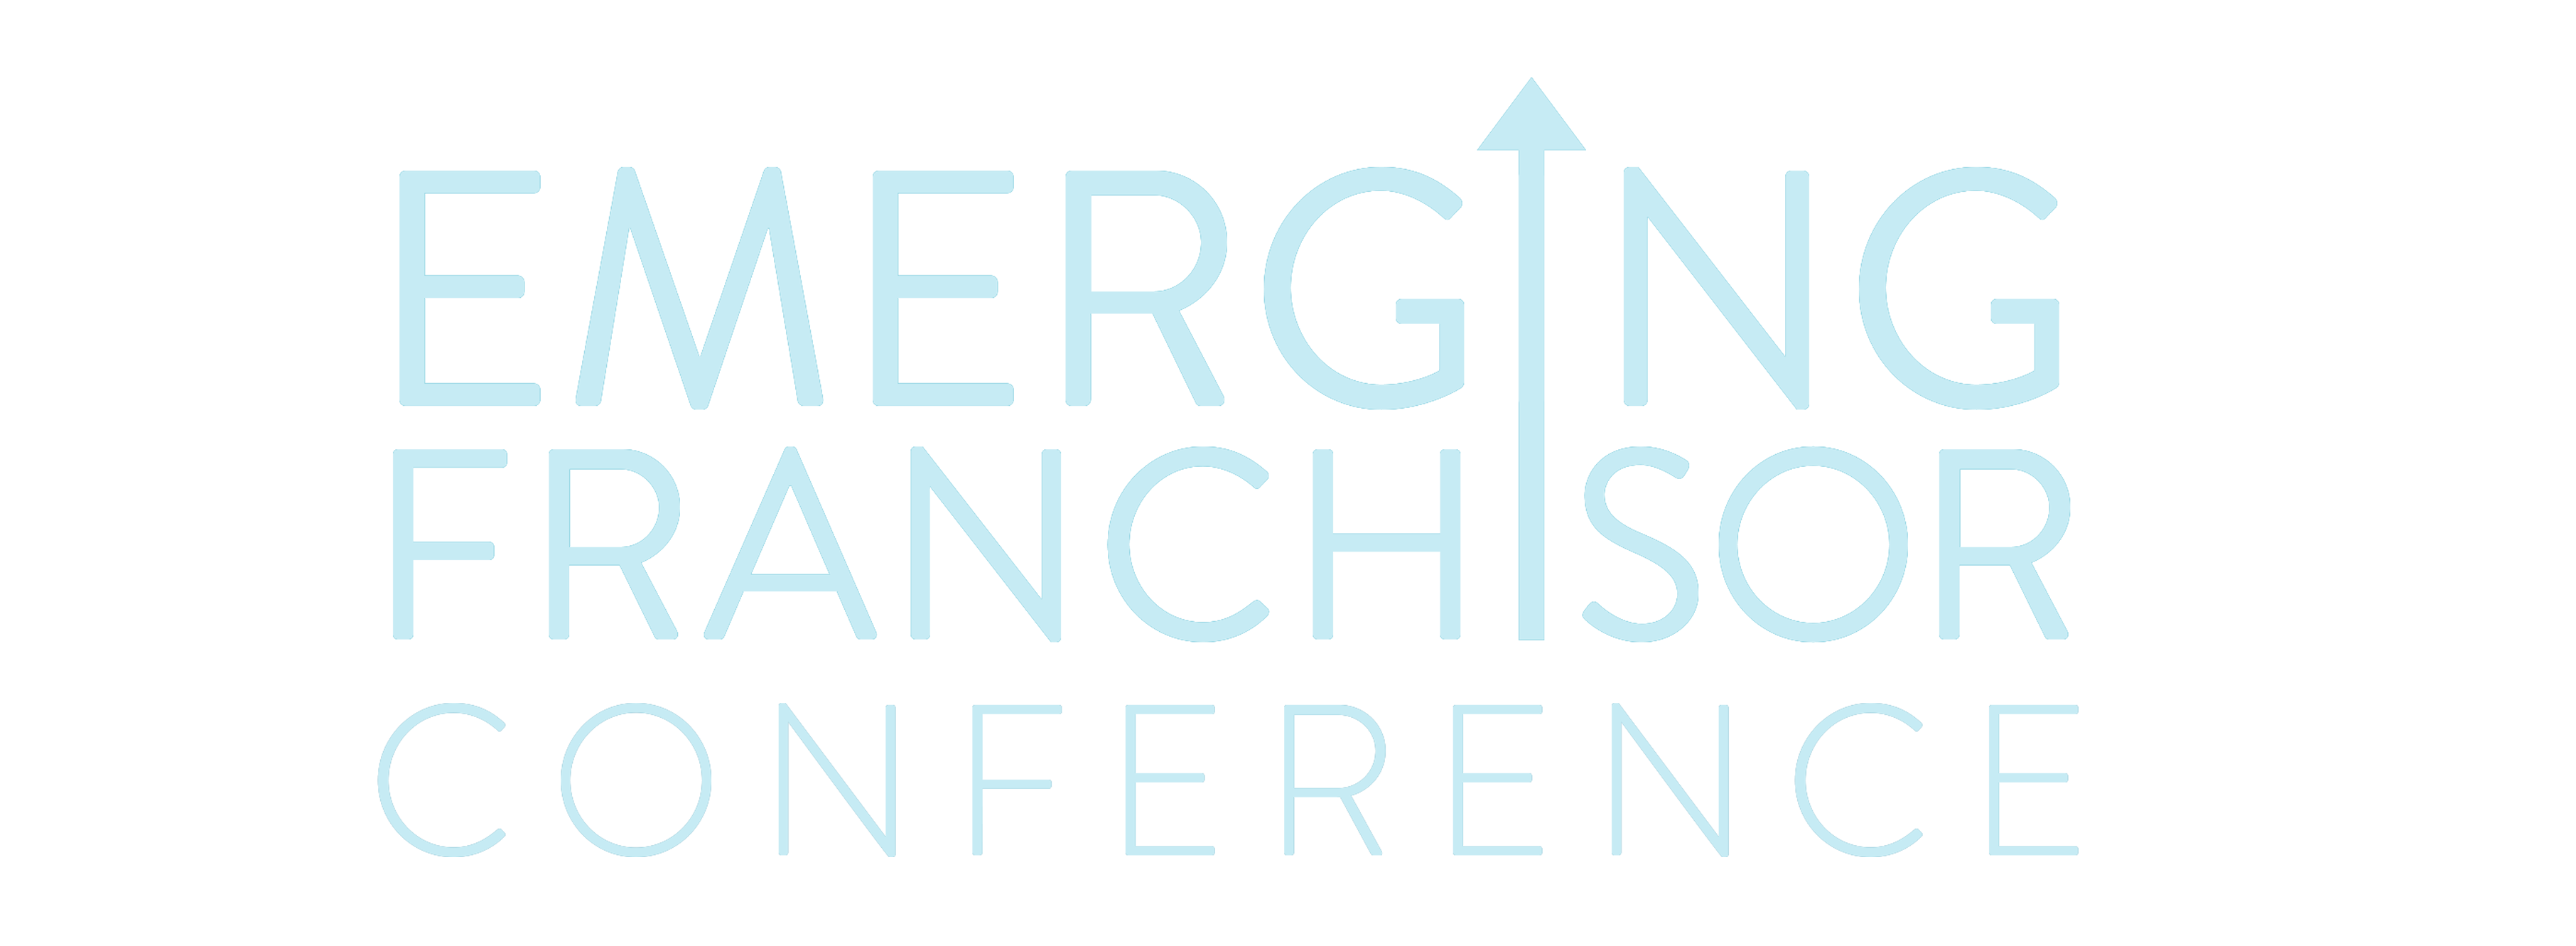 emerging franchisor conference